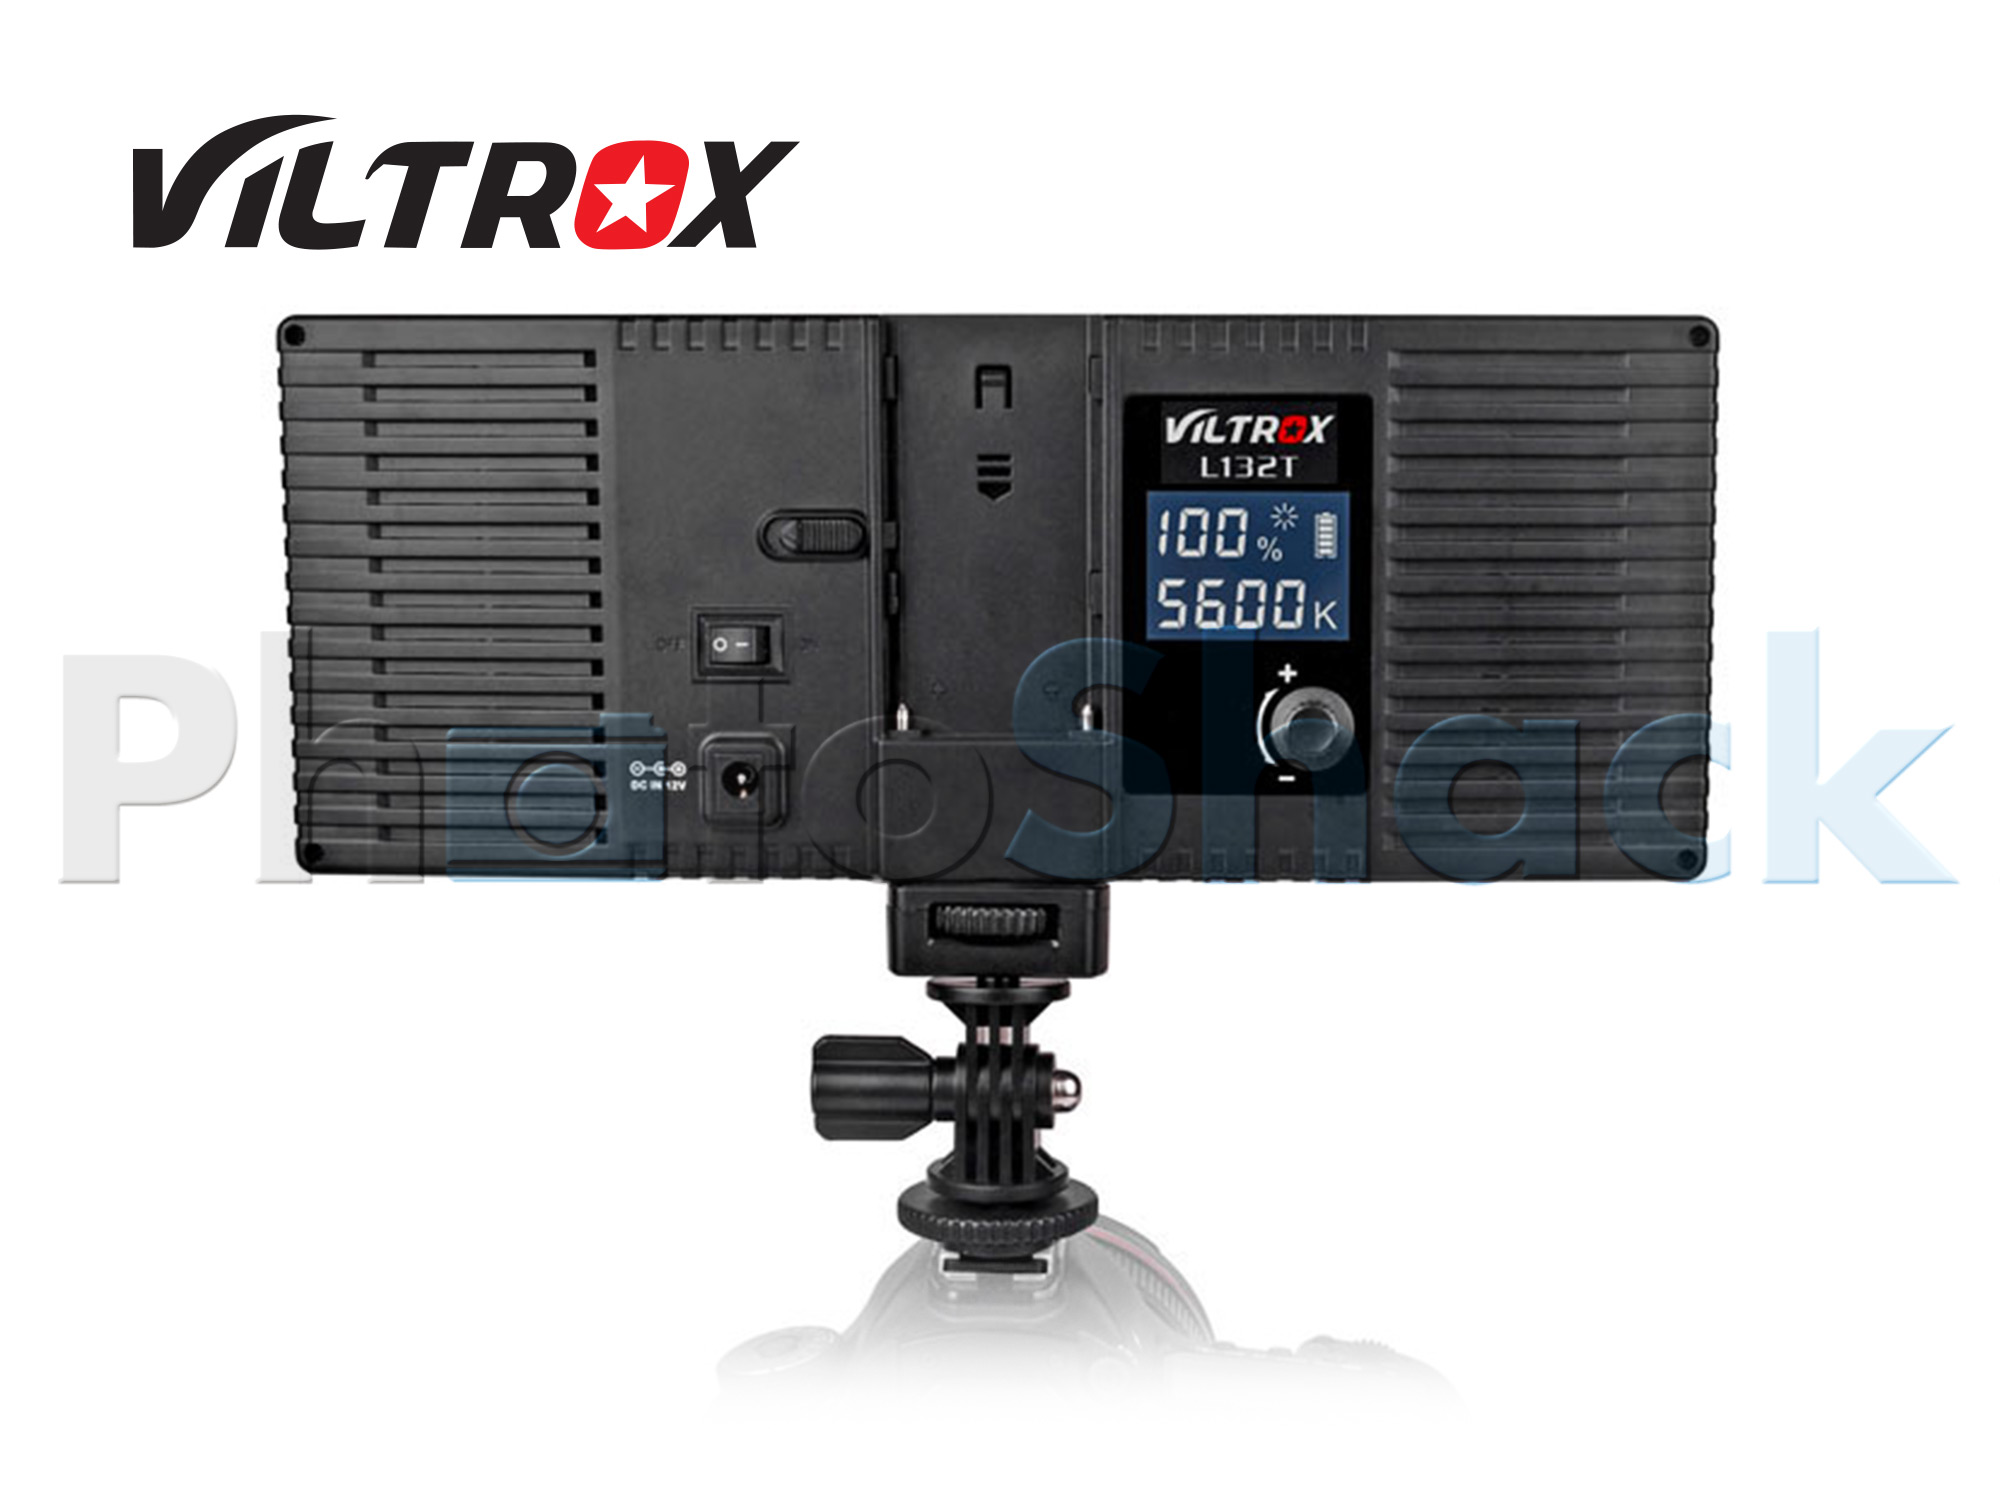 Viltrox 132 LED Soft Light - Variable Brightness